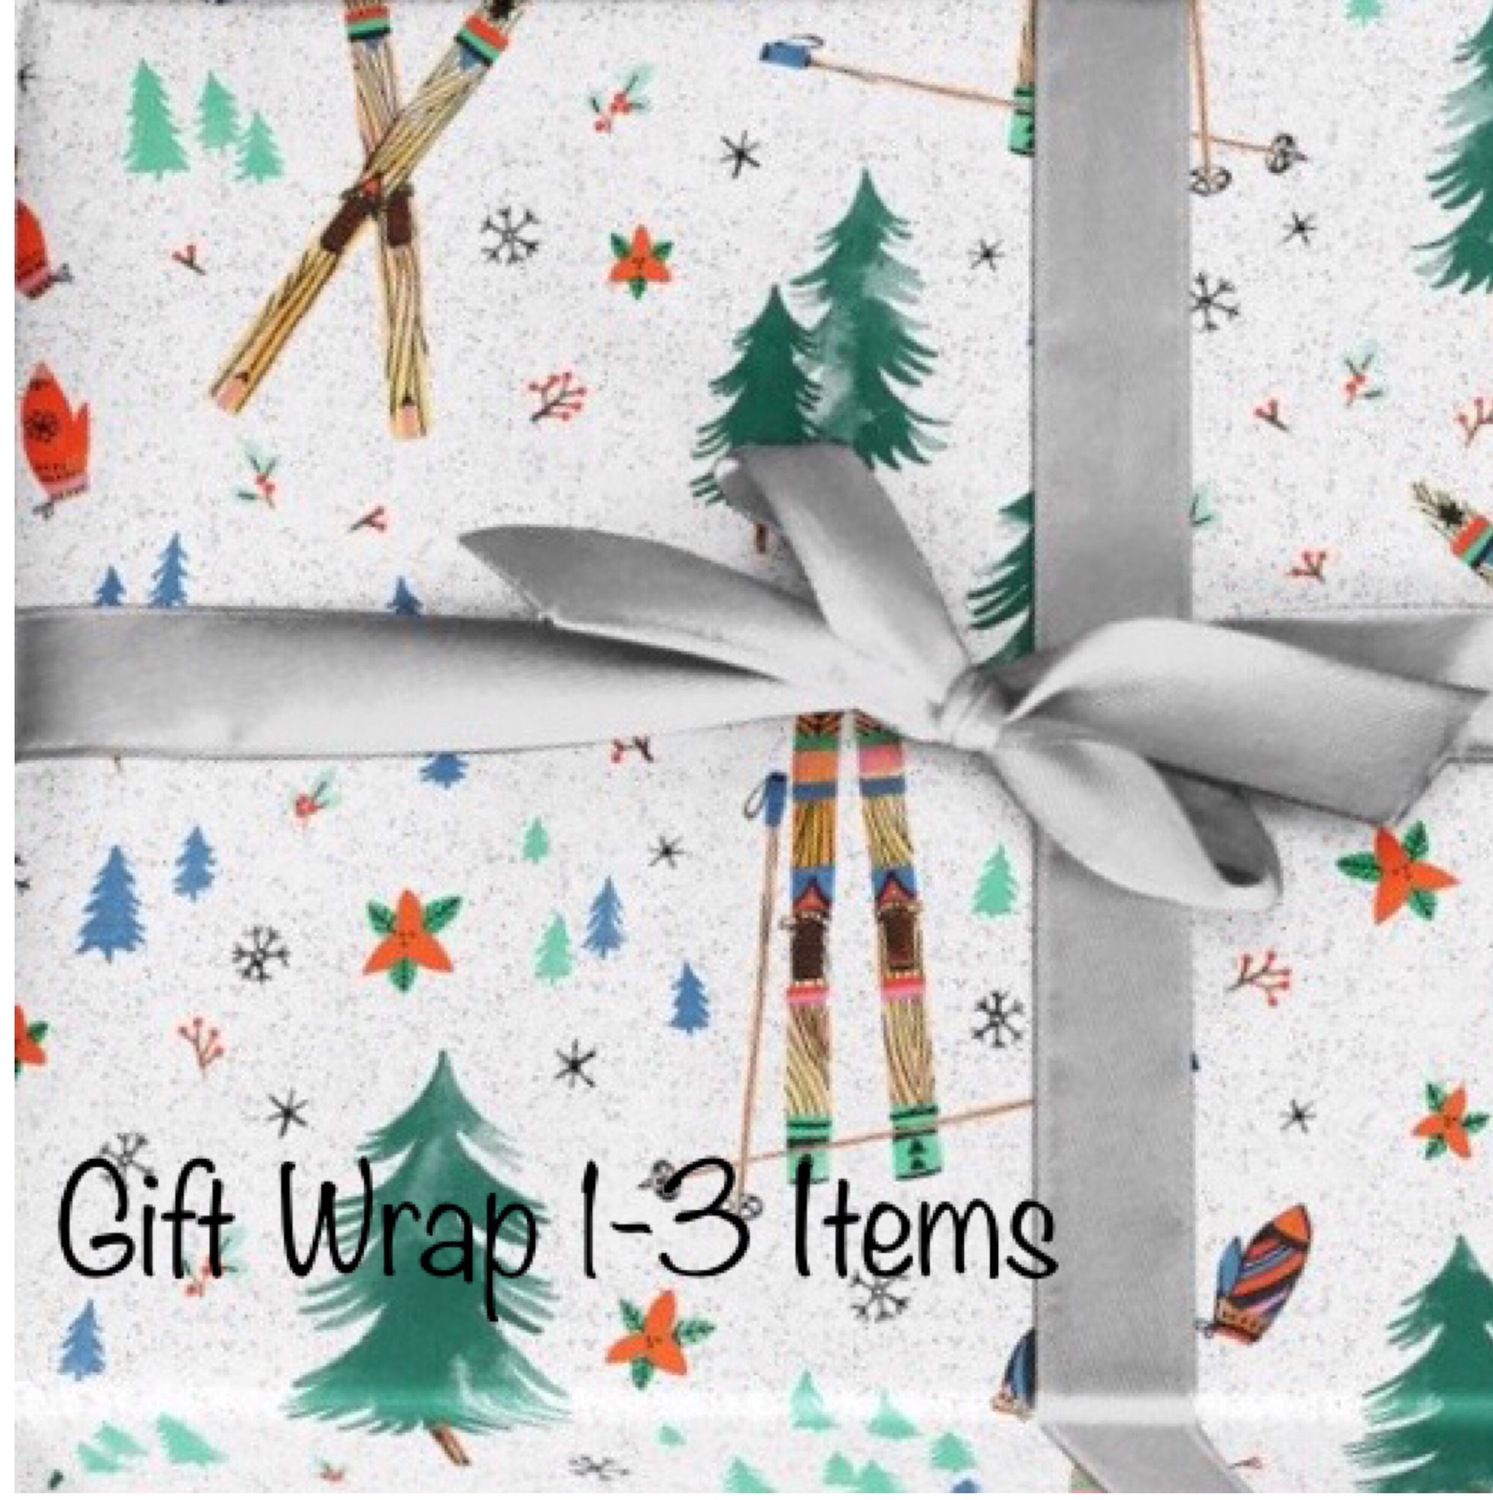 Holiday Gift Wrapping 1-3 items